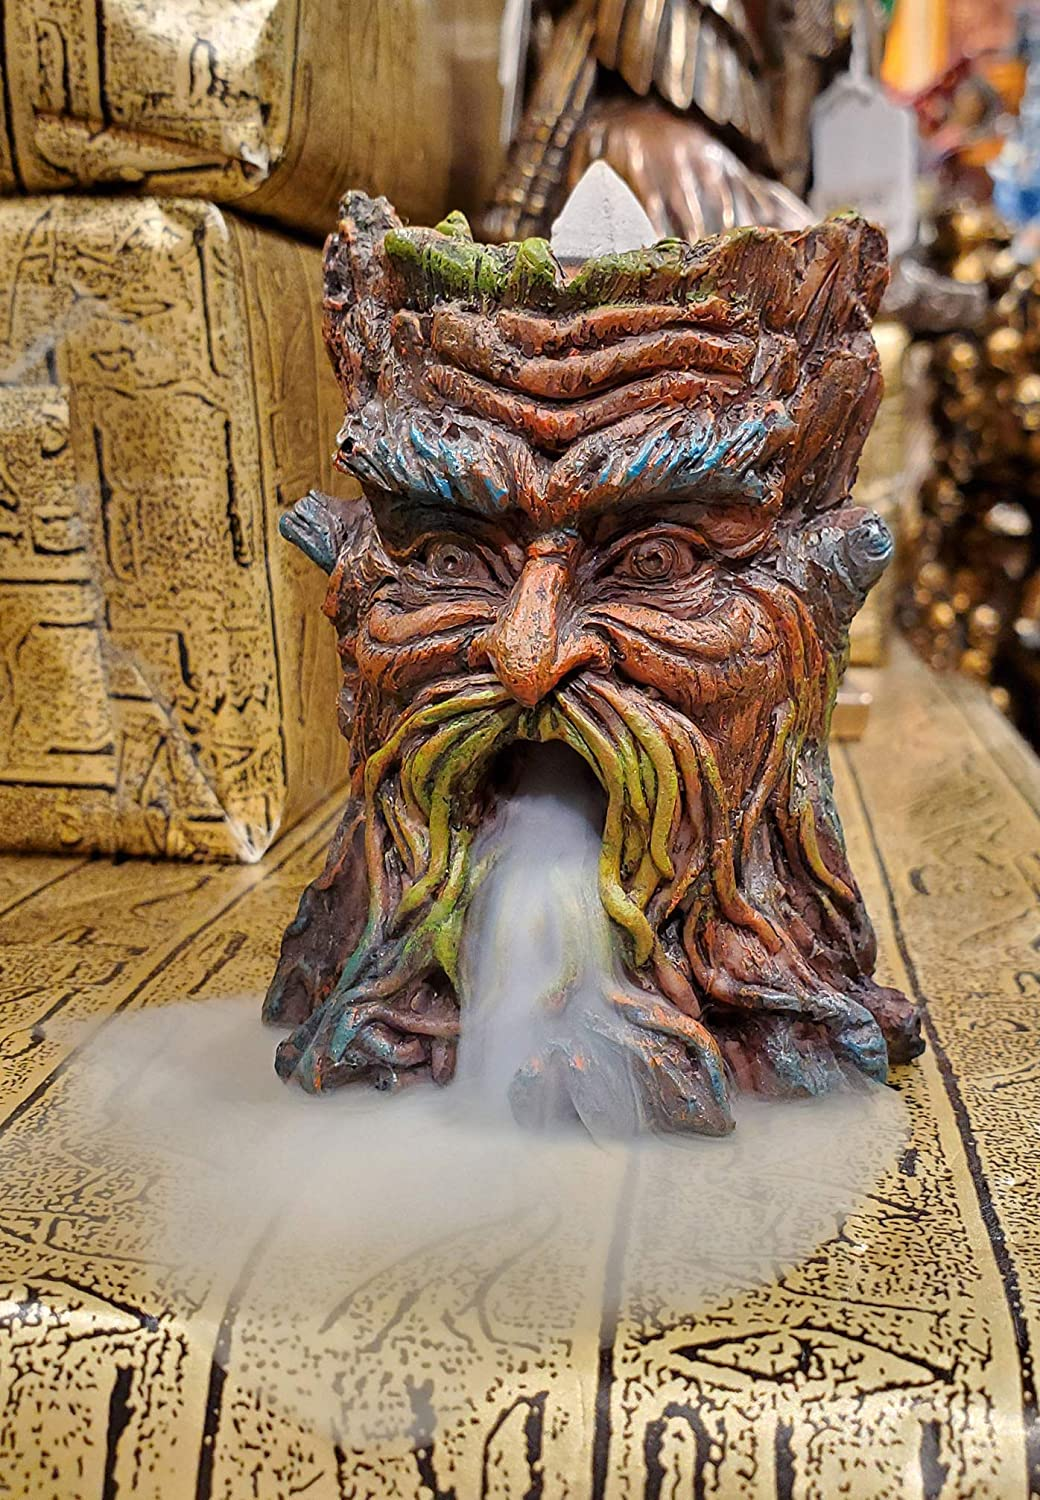 """Ebros Gift Magical Forest Mystic Cernunnos Greenman Ent Backflow Incense Cone Burner Statue 3.25"""" H Aromatherapy Scent Accessory Holder As Celtic Wiccan Horned God Home Decor Tree Spirit Sculpture"""